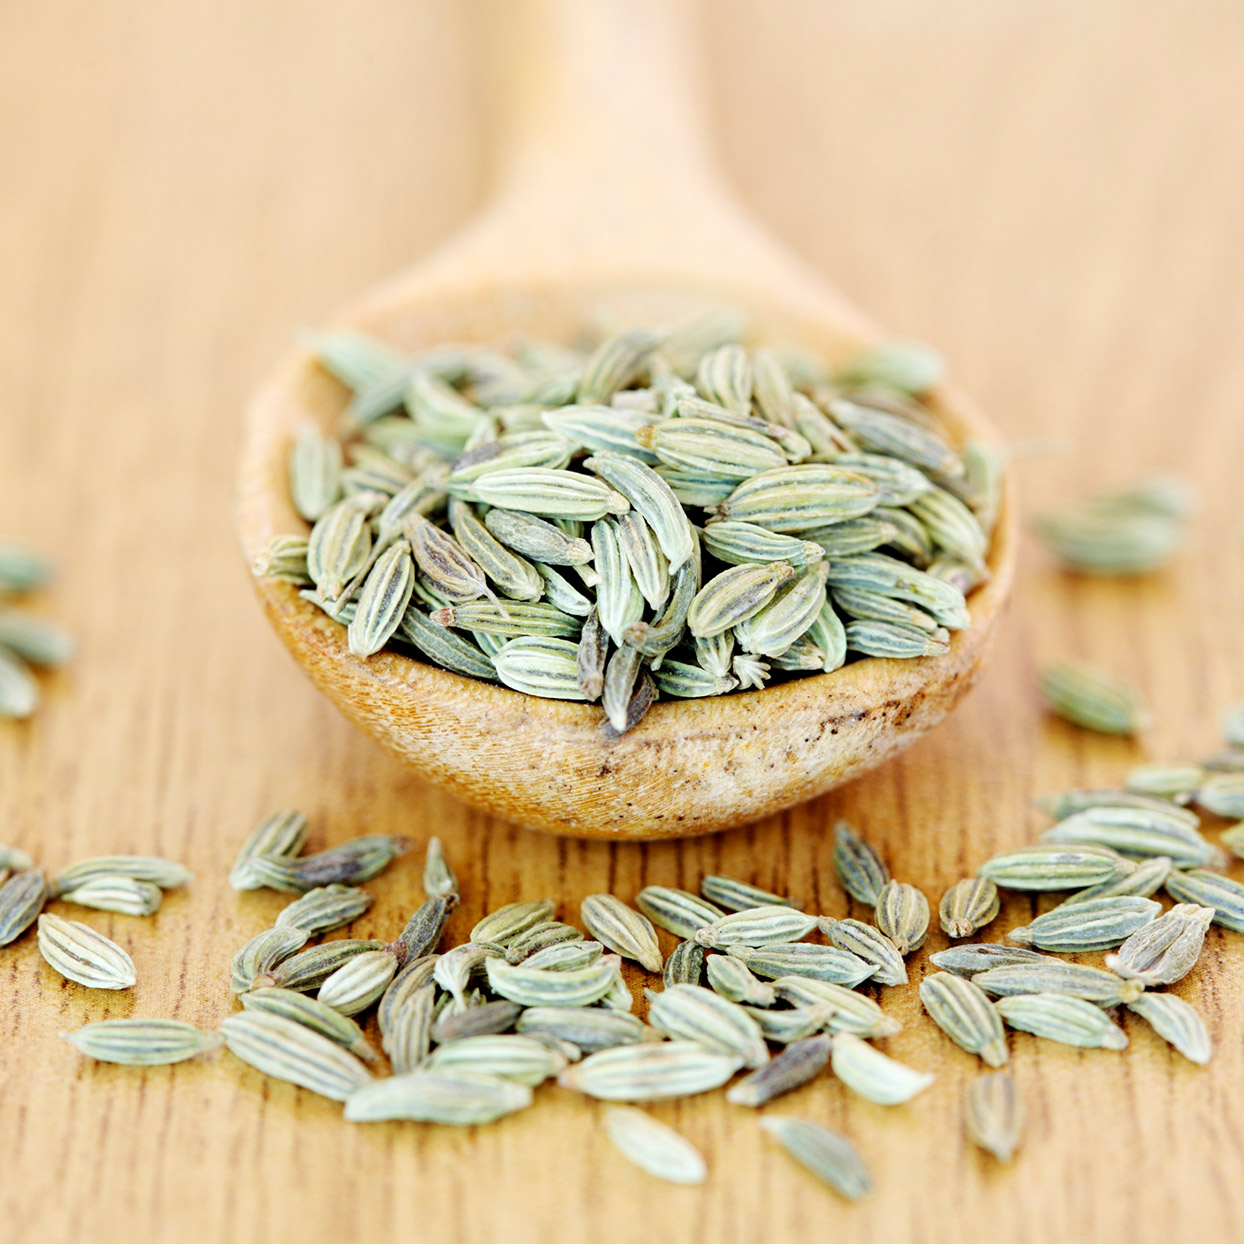 What Are Fennel Seeds and How Do You Cook with Them?